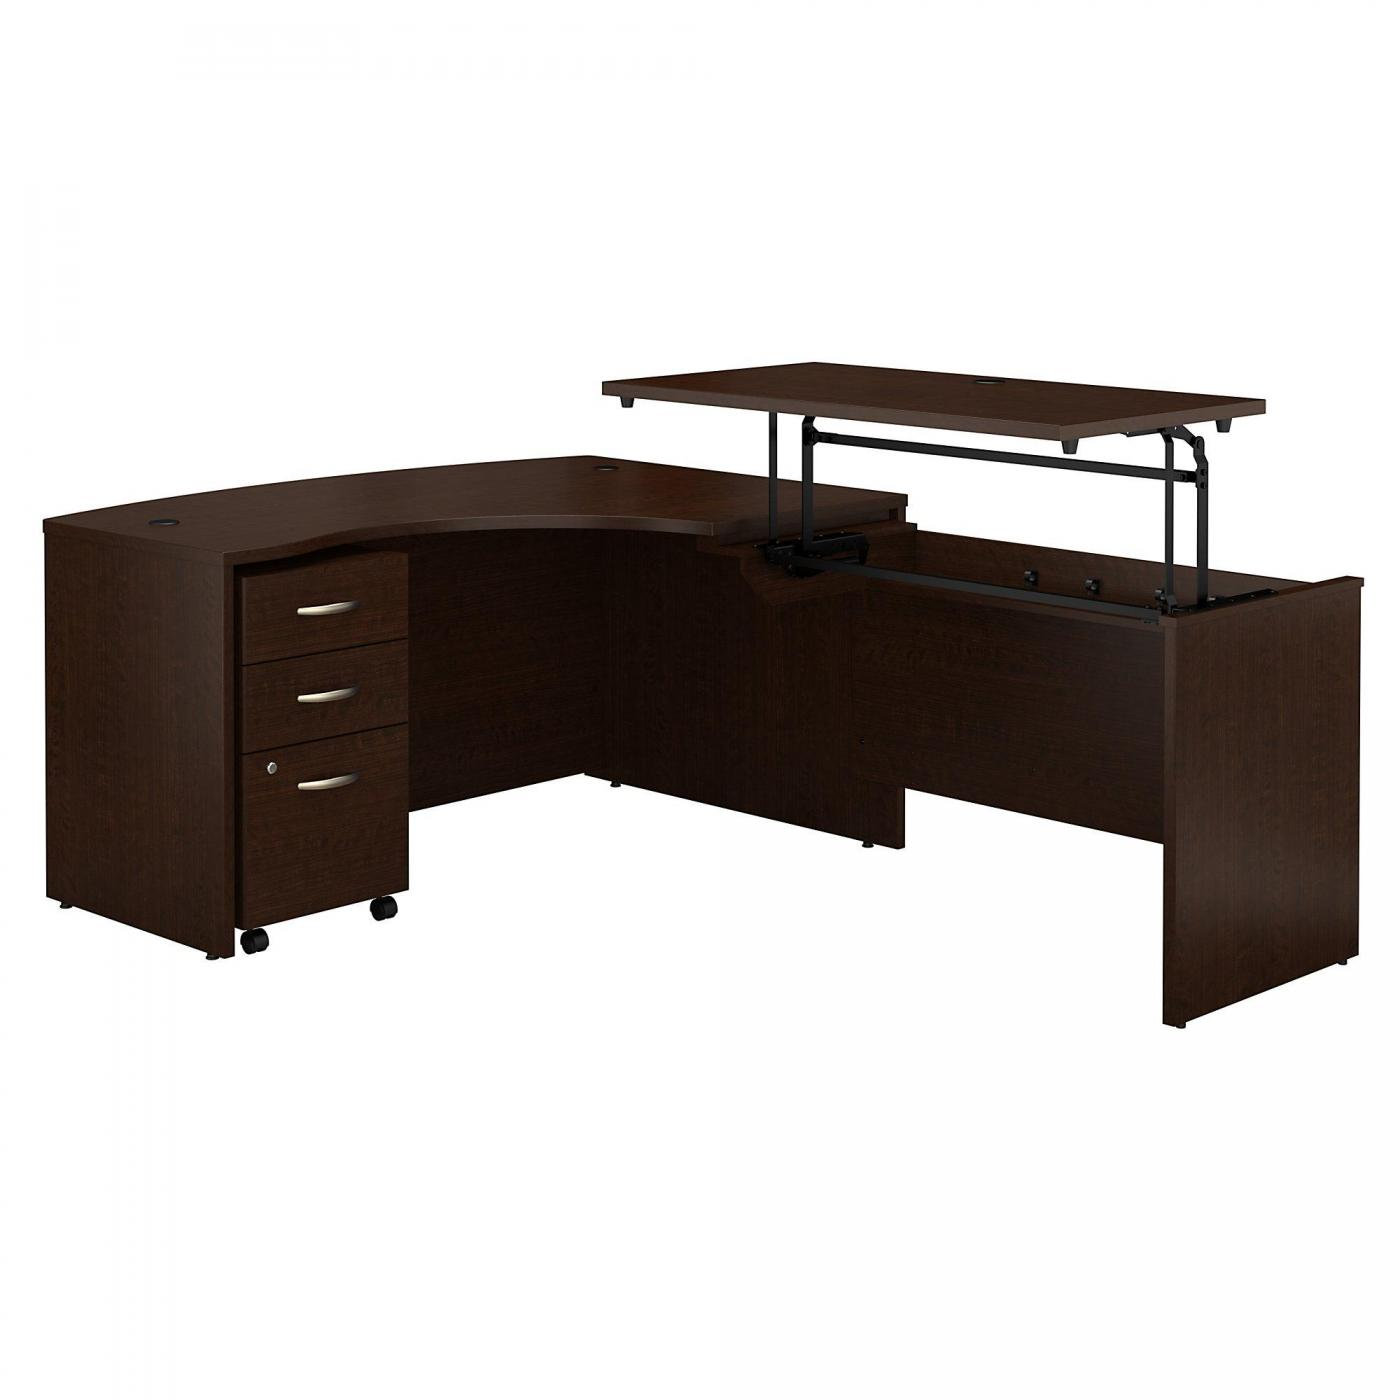 <font color=#c60><b>BUSH BUSINESS FURNITURE SERIES C 60W X 43D LEFT HAND 3 POSITION SIT TO STAND L SHAPED DESK WITH MOBILE FILE CABINET. FREE SHIPPING. VIDEO:</font></b>